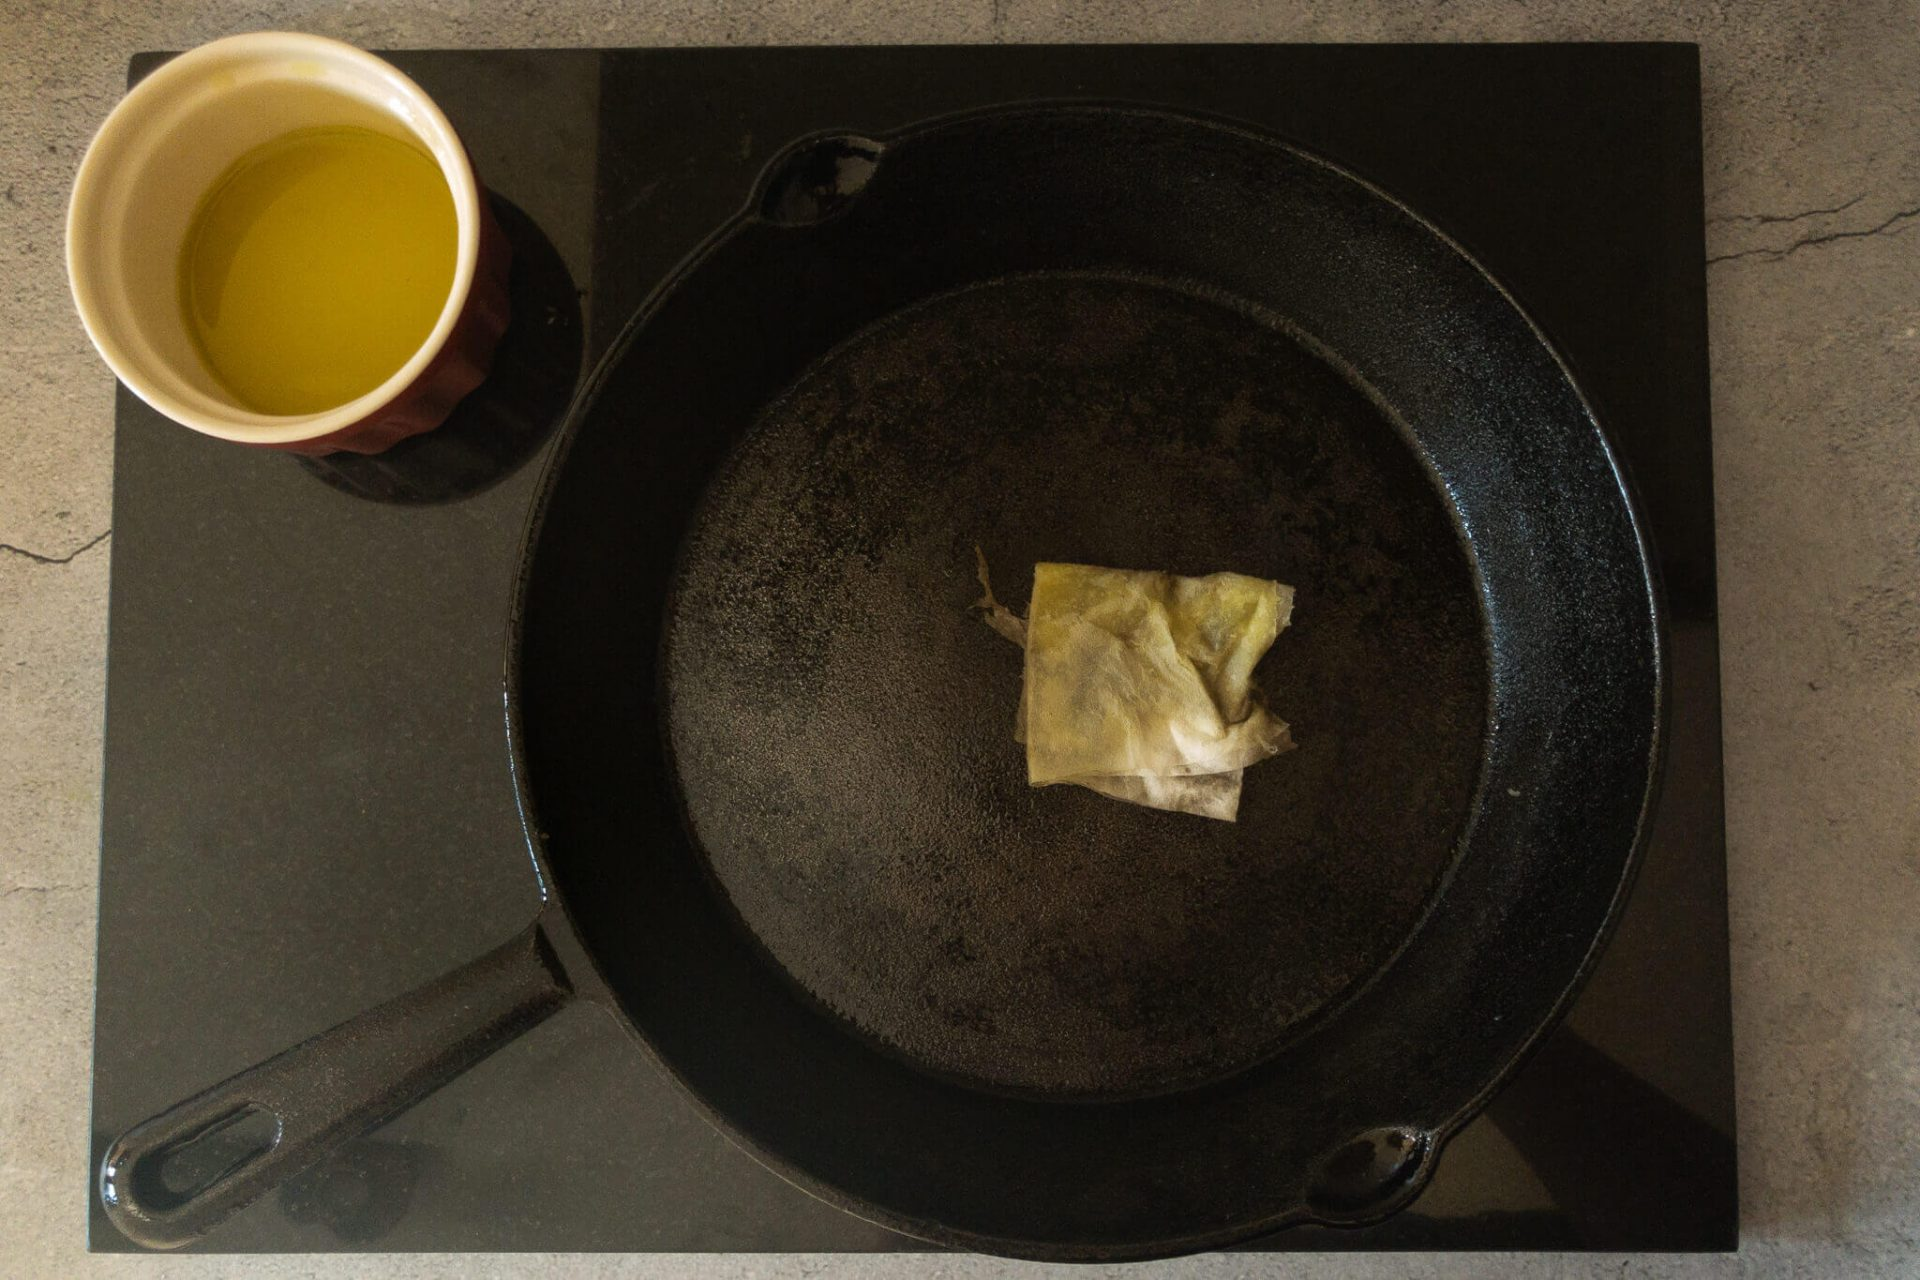 Using a cotton pad to apply a thing layer of oil onto the skillet